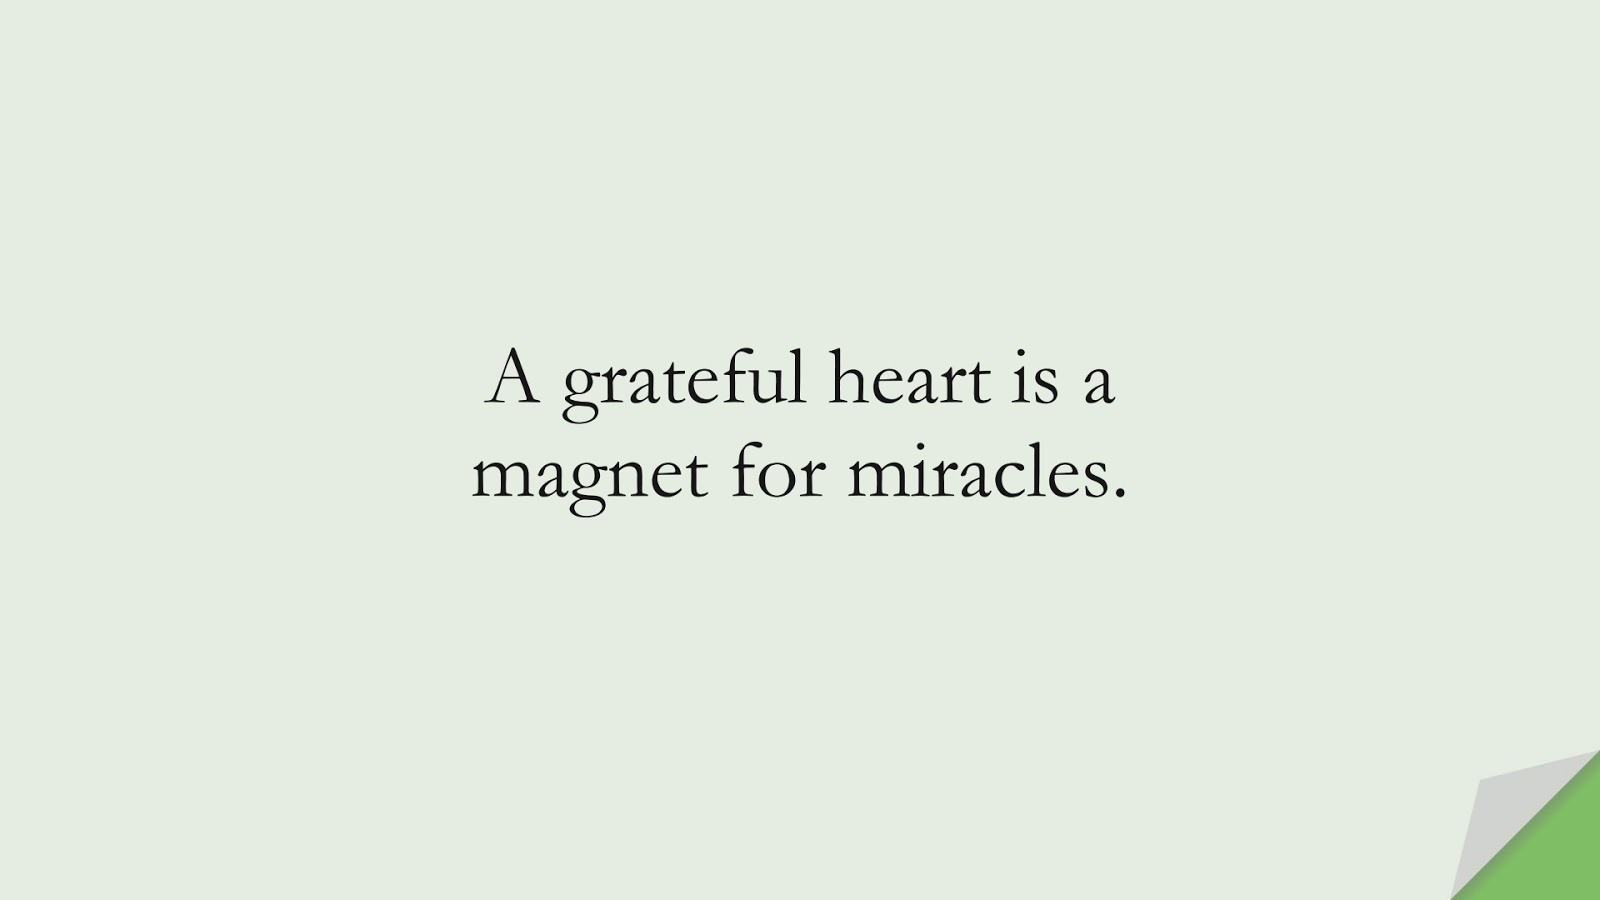 A grateful heart is a magnet for miracles.FALSE